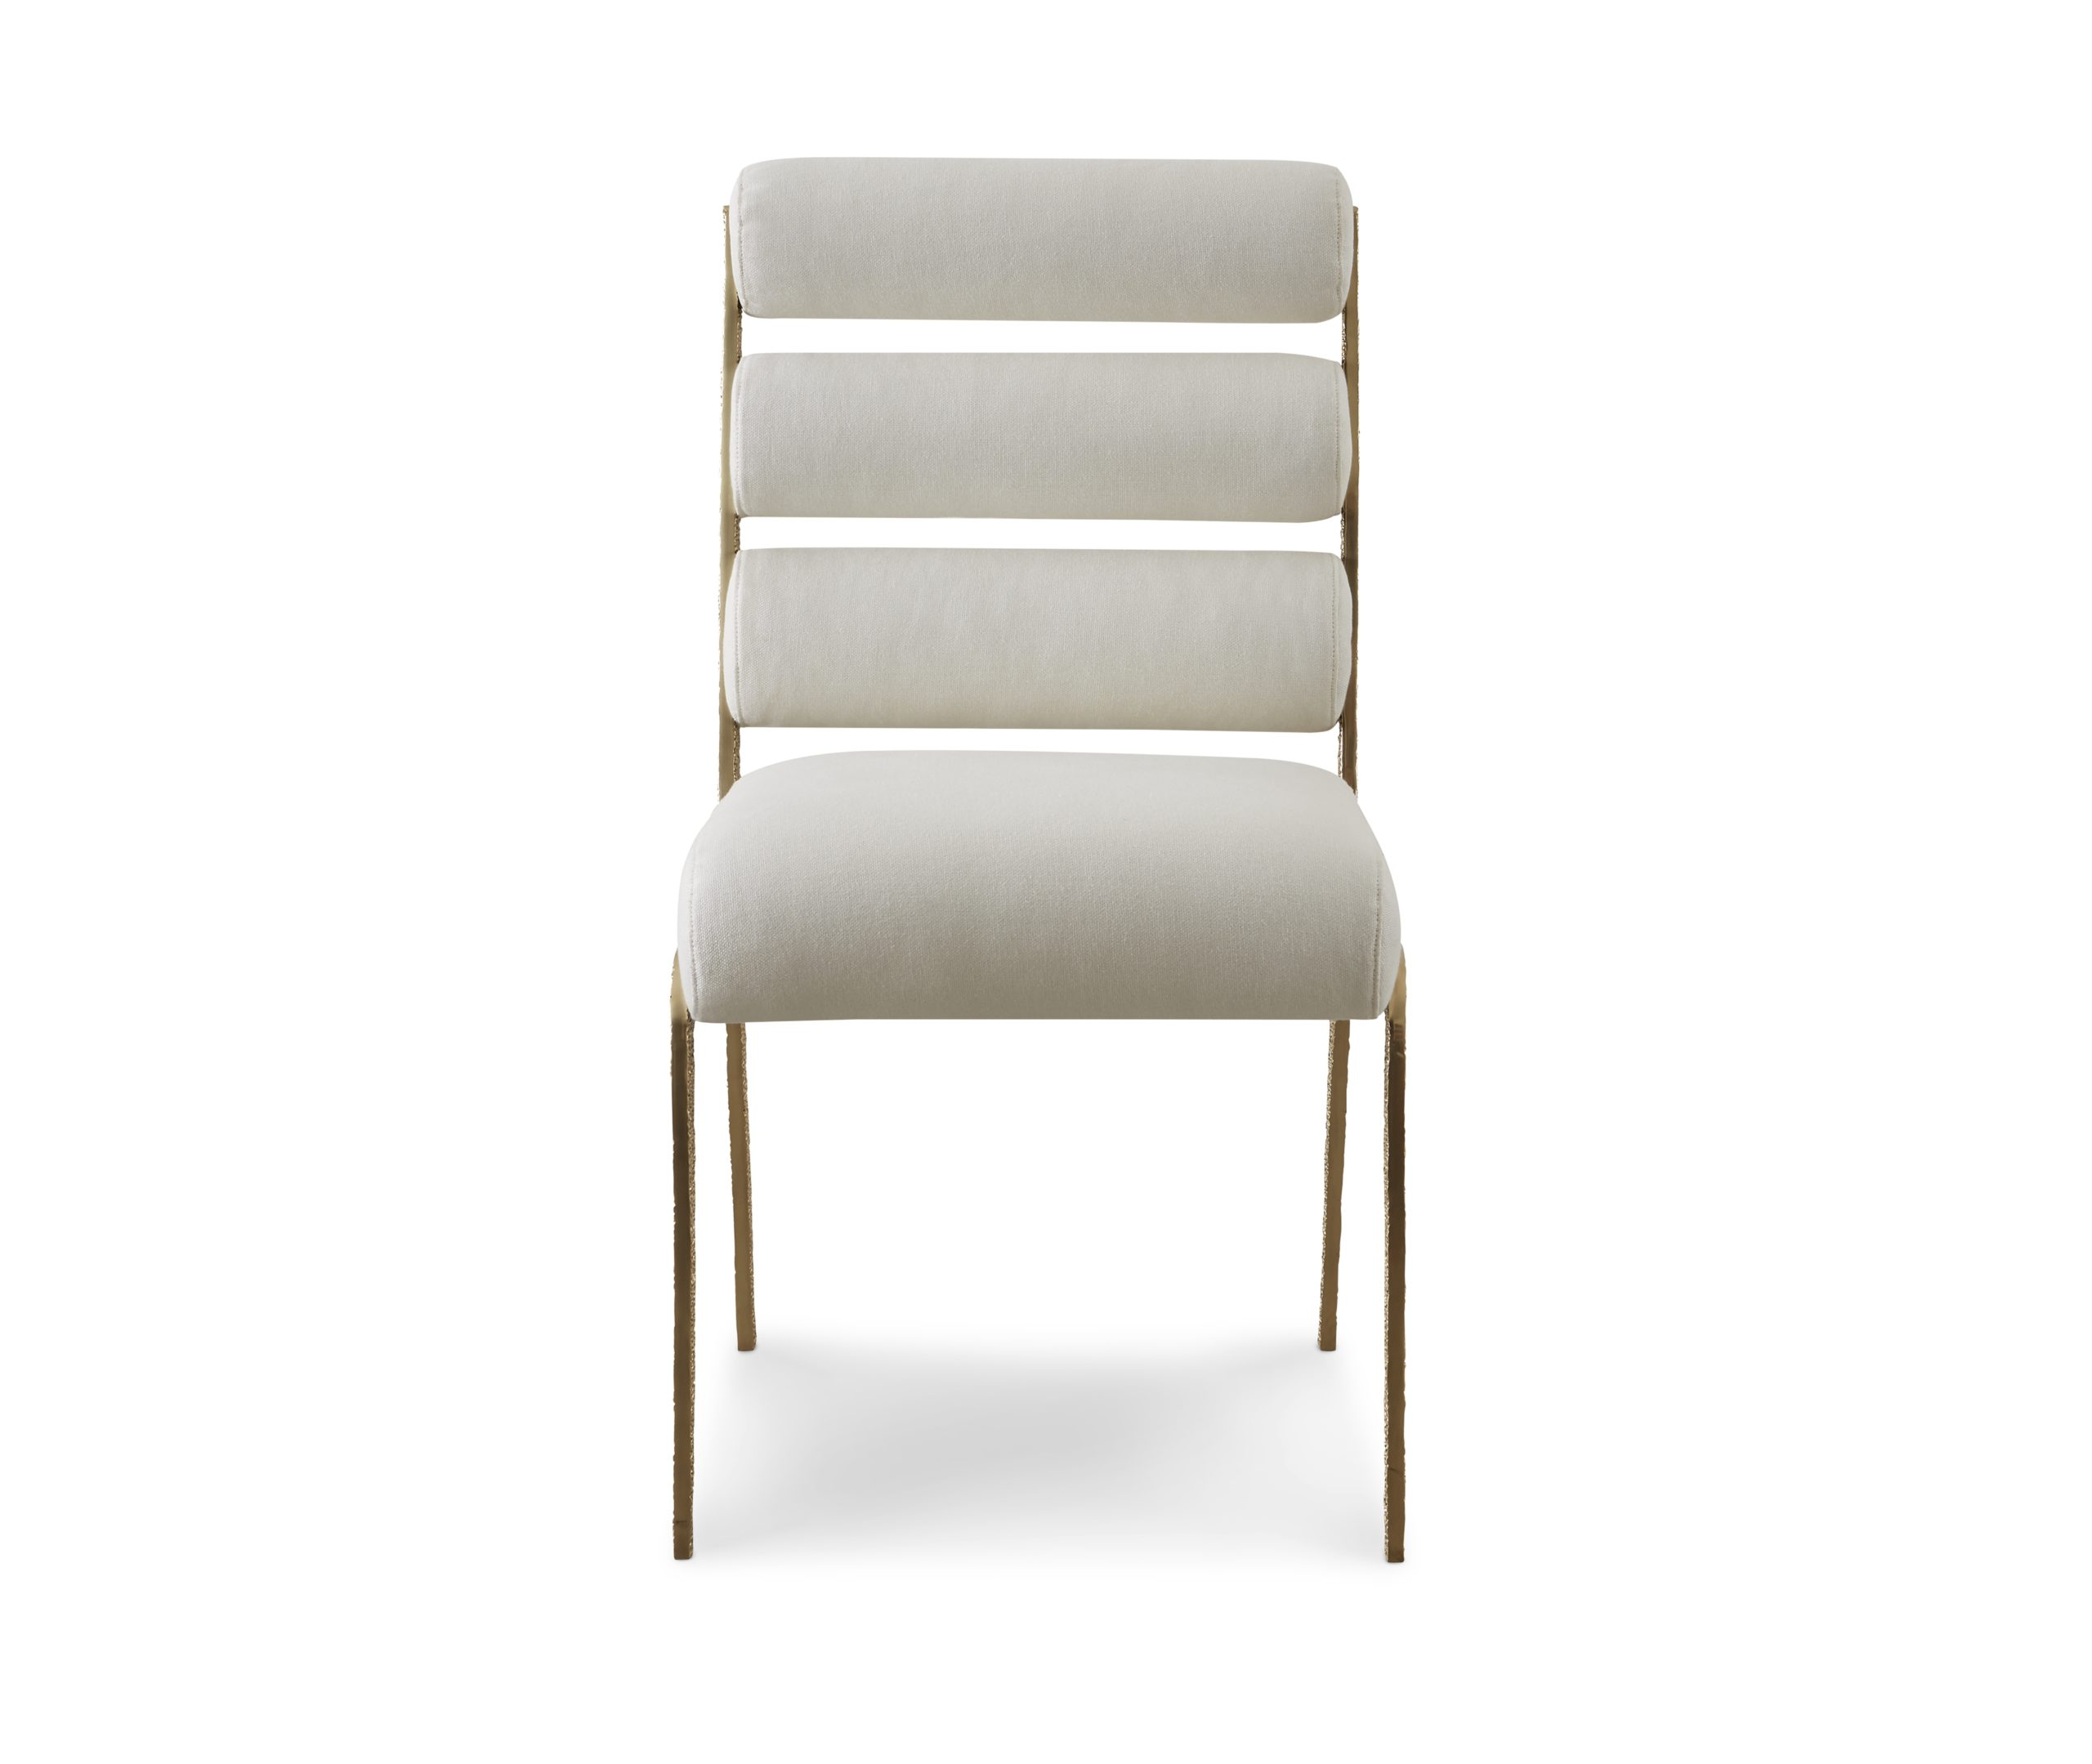 Baker_products_WNWN_lucca_chair_BAA3043_FRONT-scaled-2